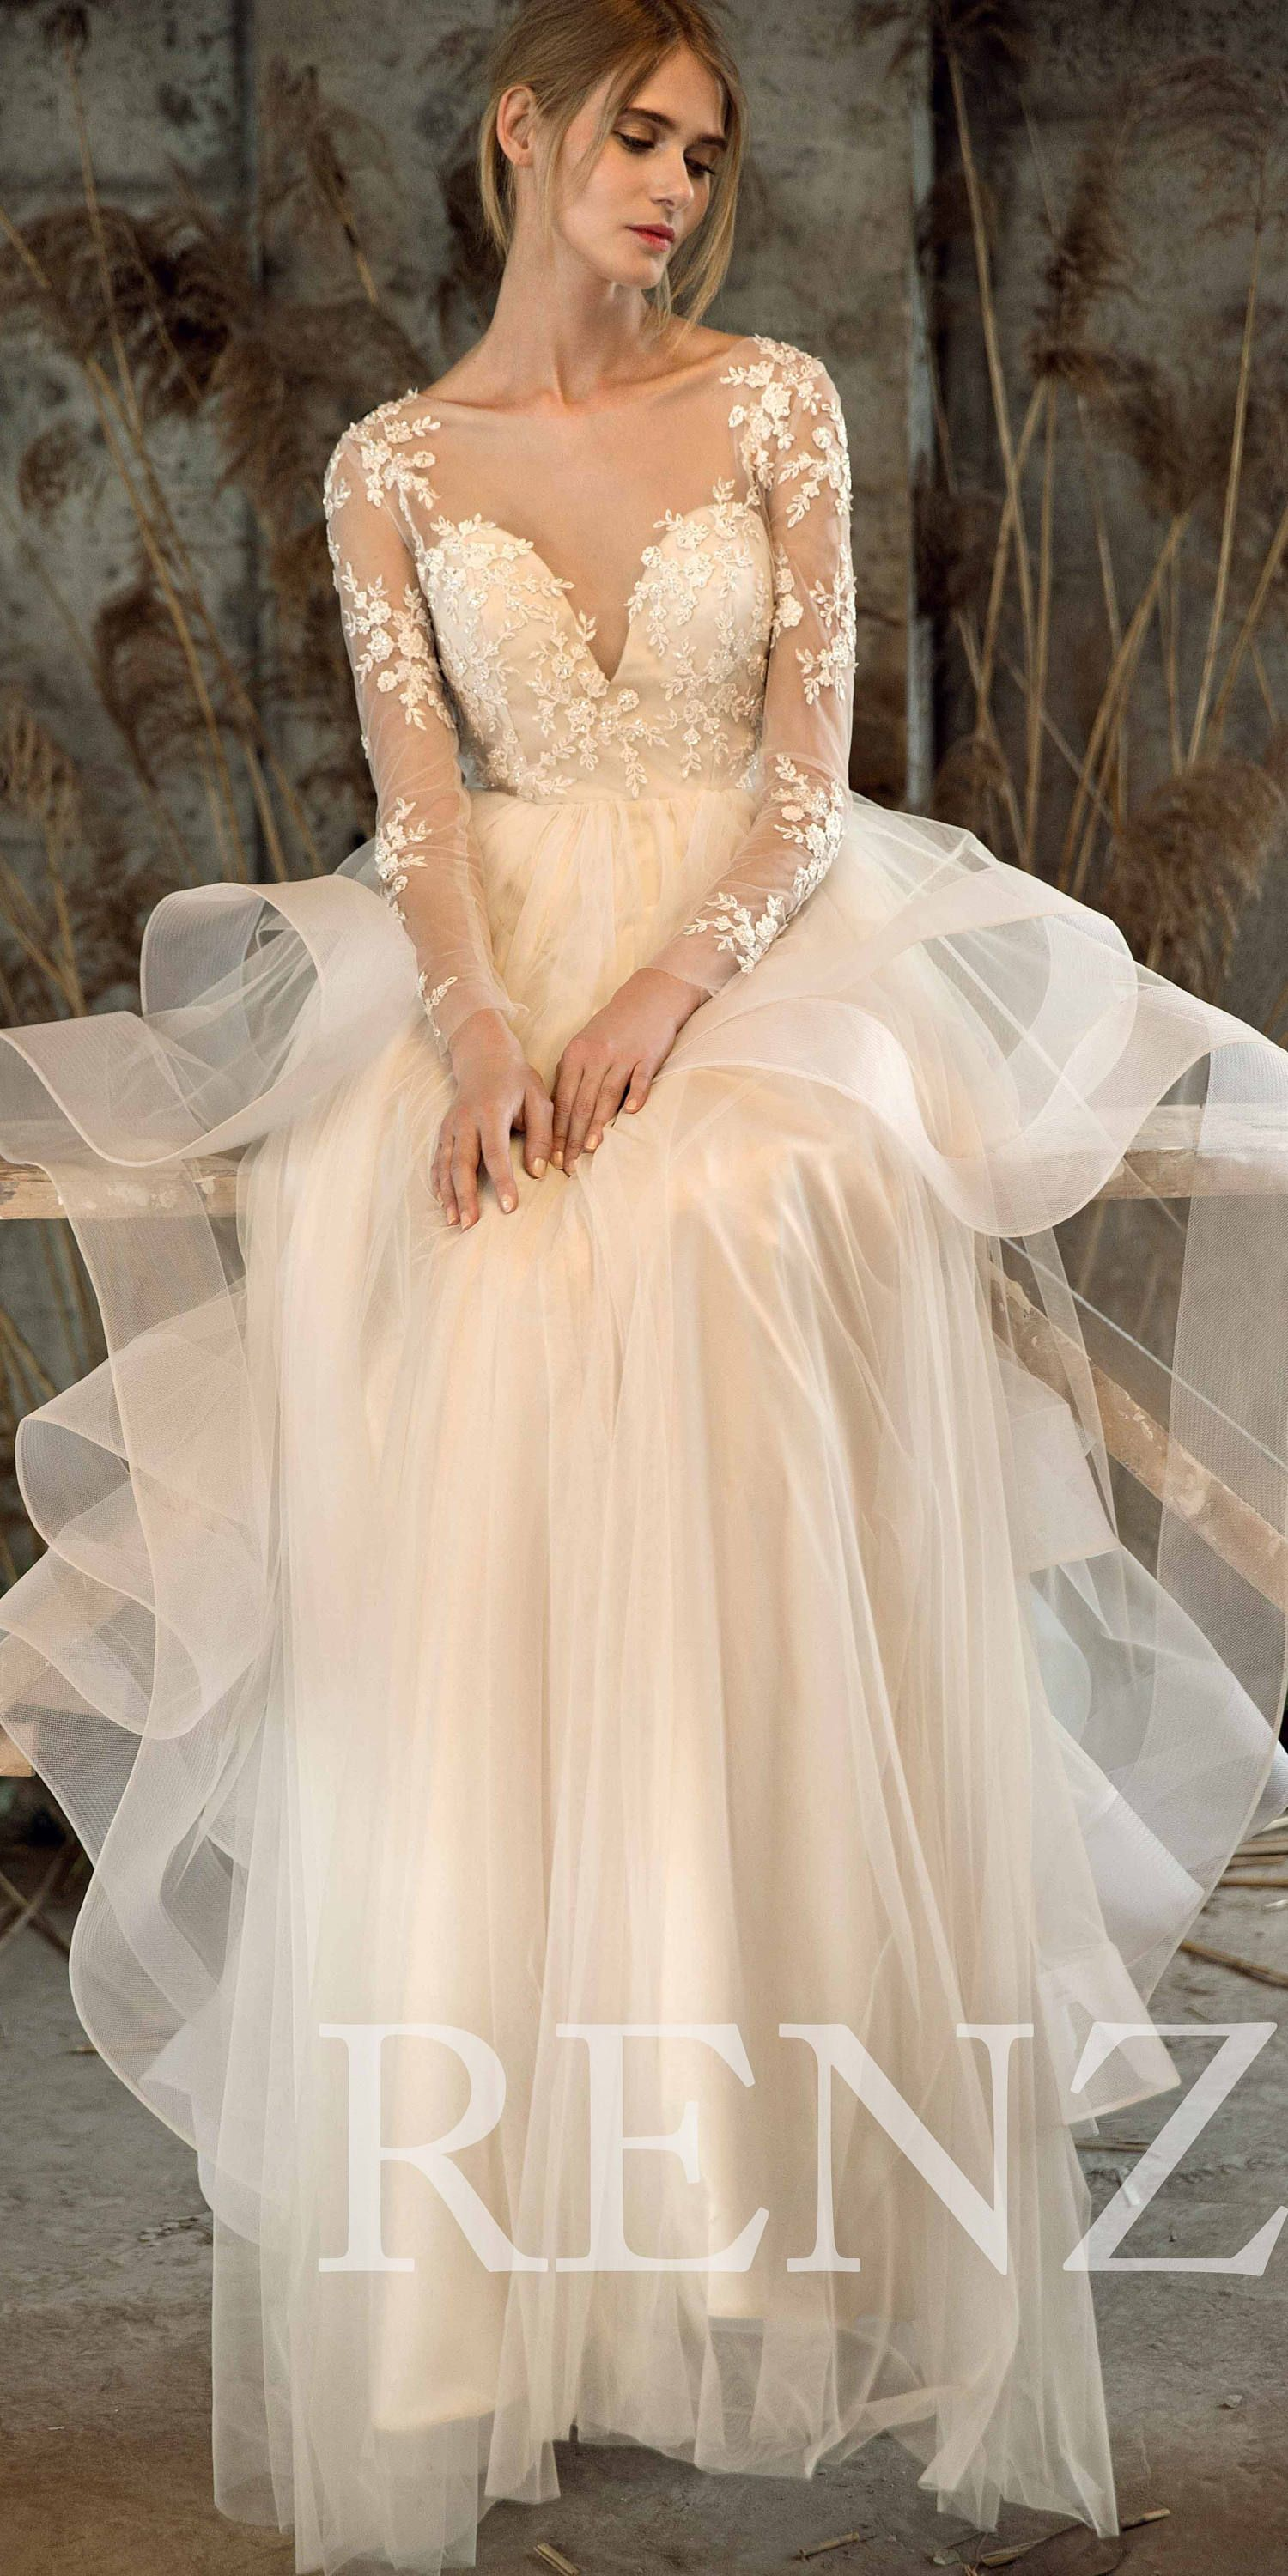 Wedding Dress Off White Tulle Dress,Long Sleeve Lace Bride Dress ...